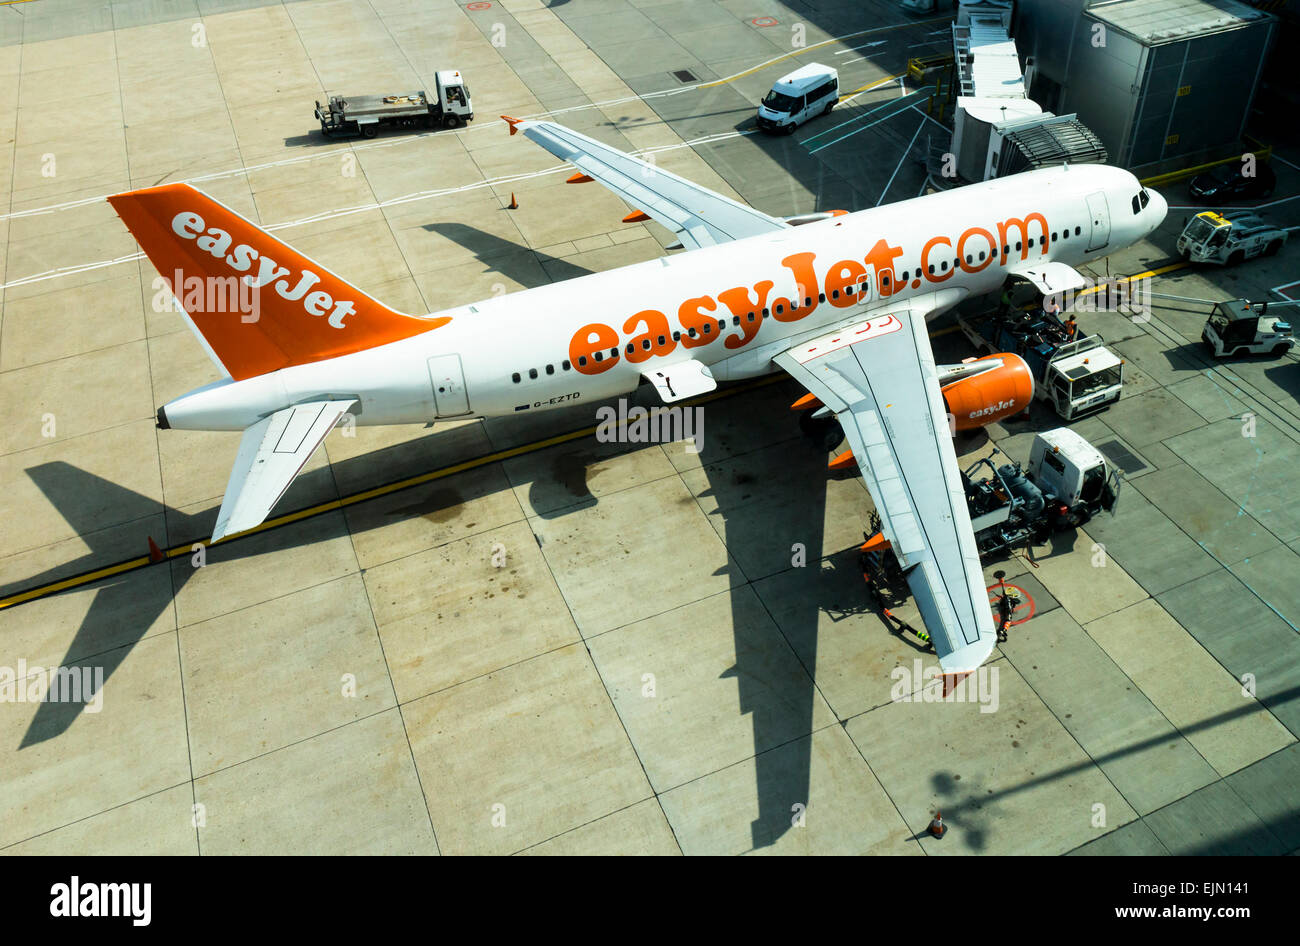 Easyjet aeroplane being serviced on the apron at Gatwick airport, north terminal, West Sussex, England. - Stock Image